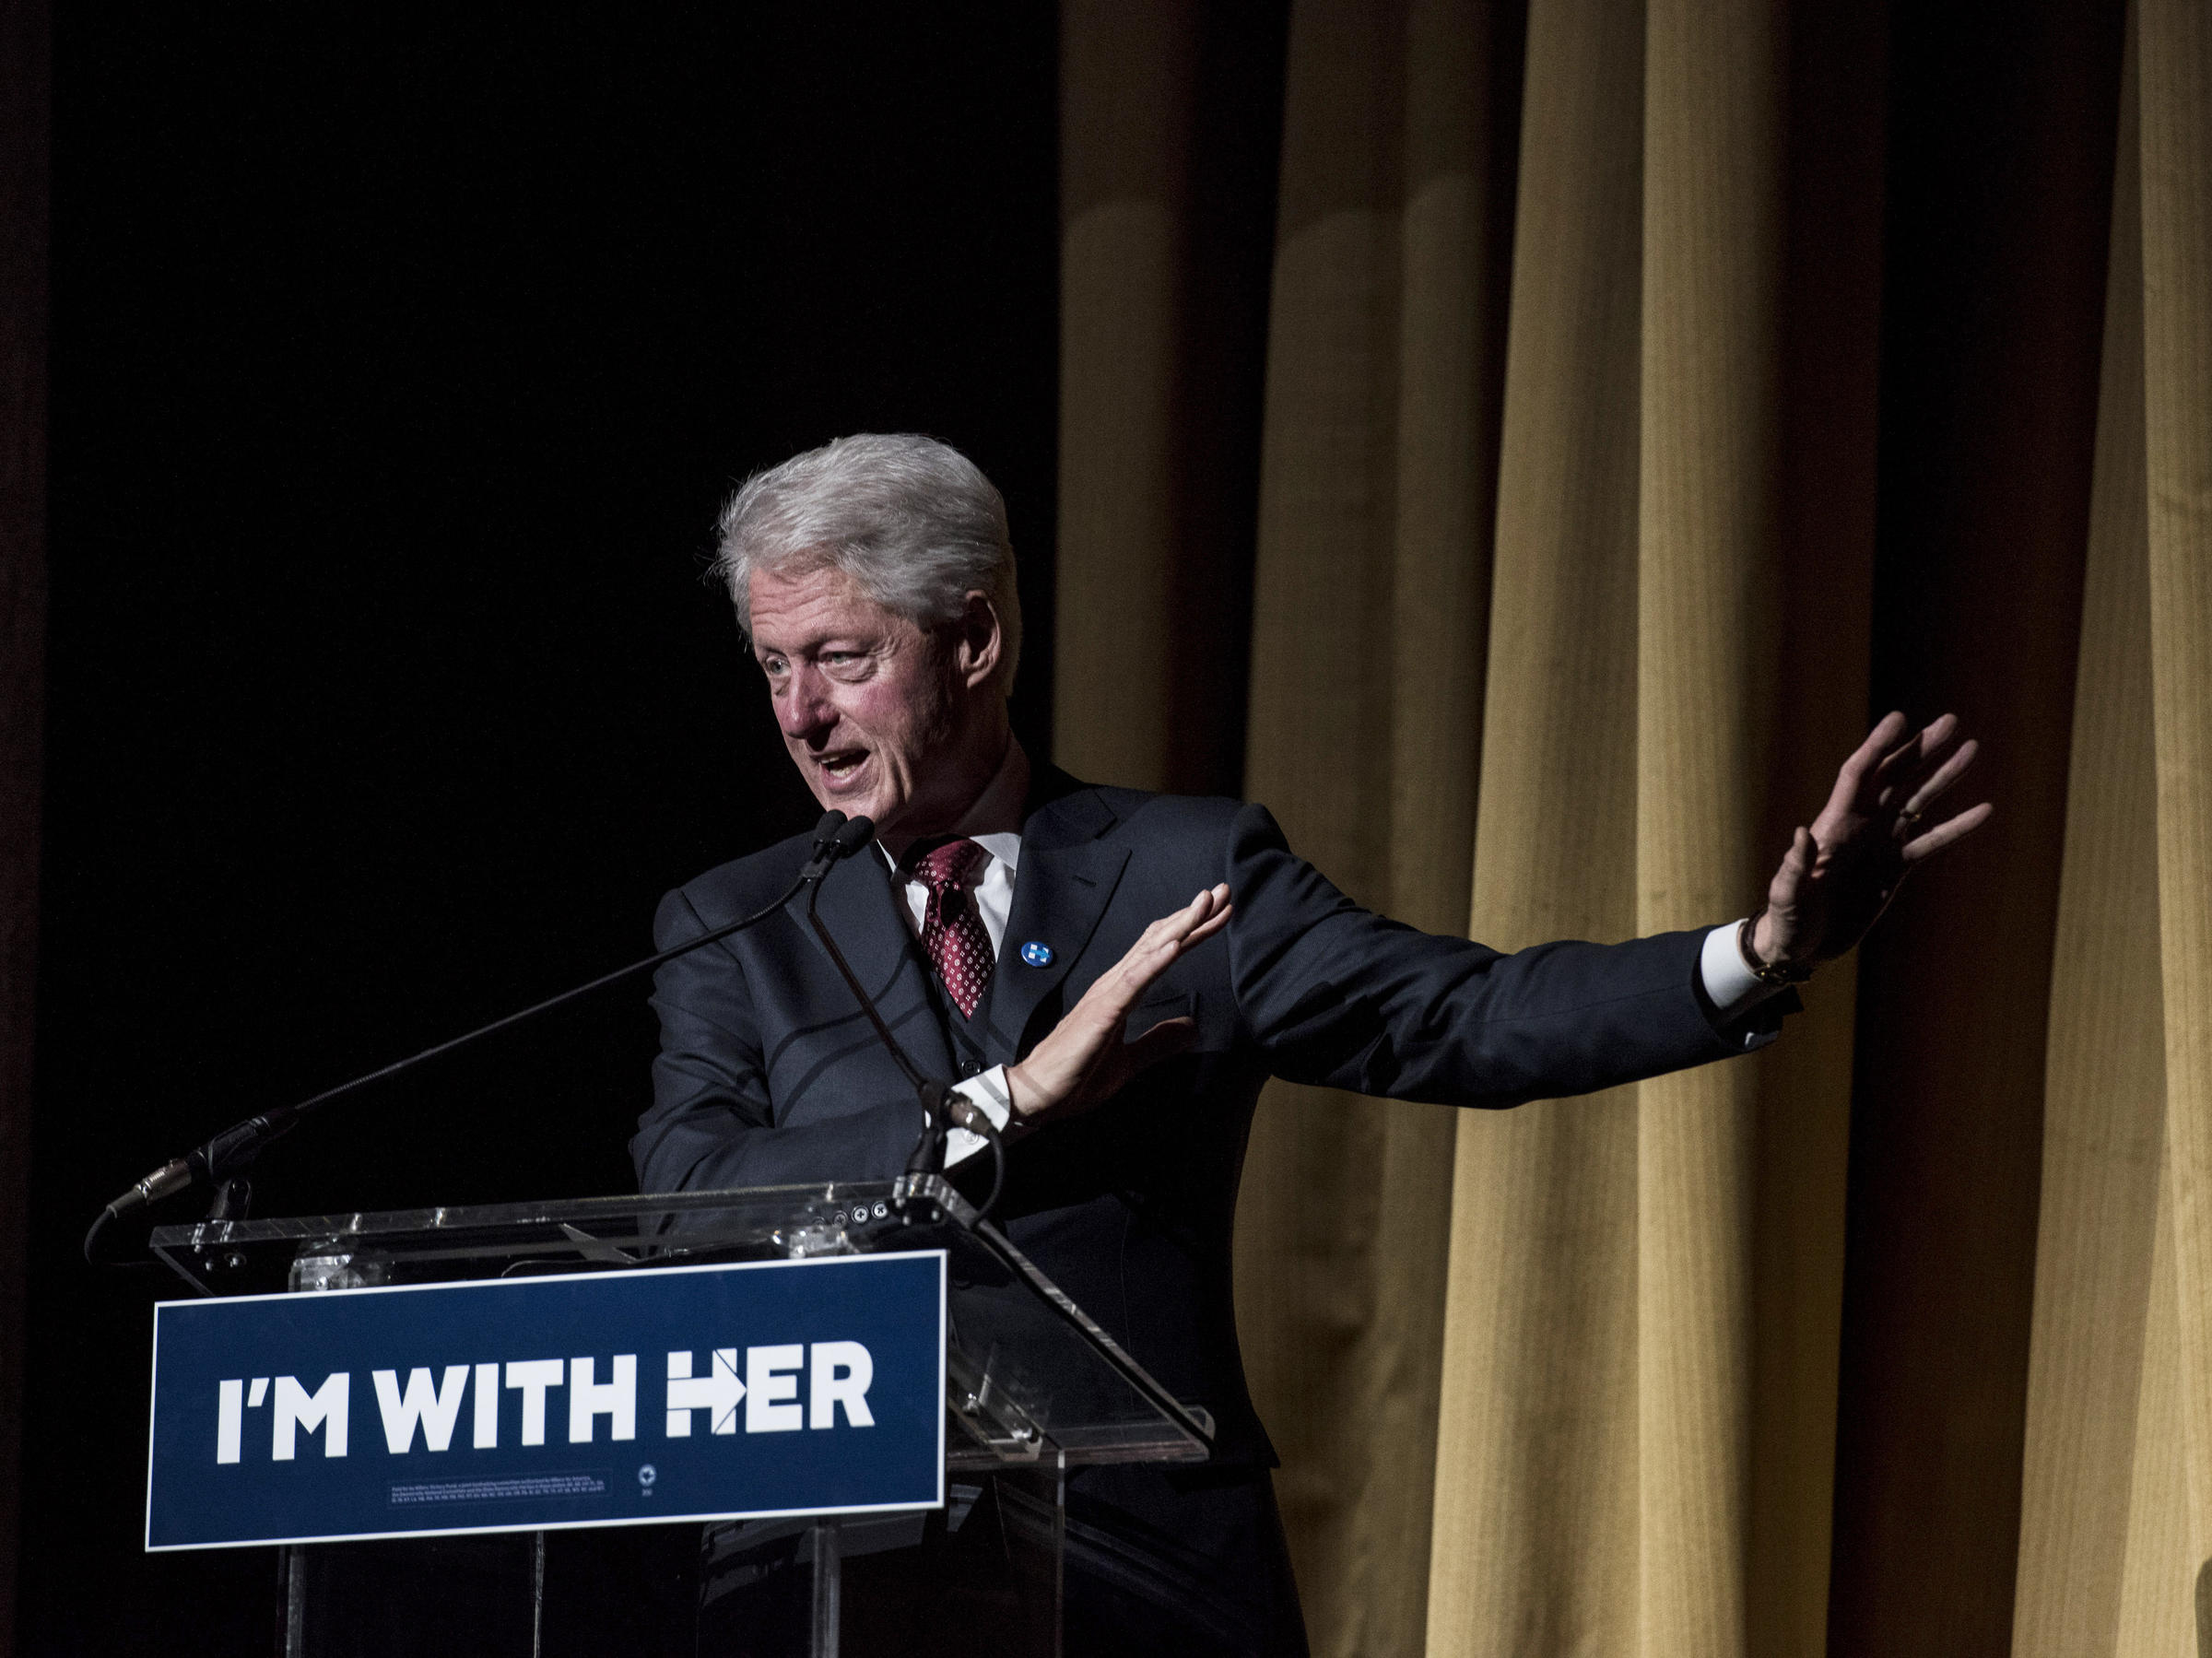 bill clinton and integrity The death of outrage: bill clinton and the assault on american ideals [william j  bennett] on  of those who dared question bill clinton's honesty and integrity.